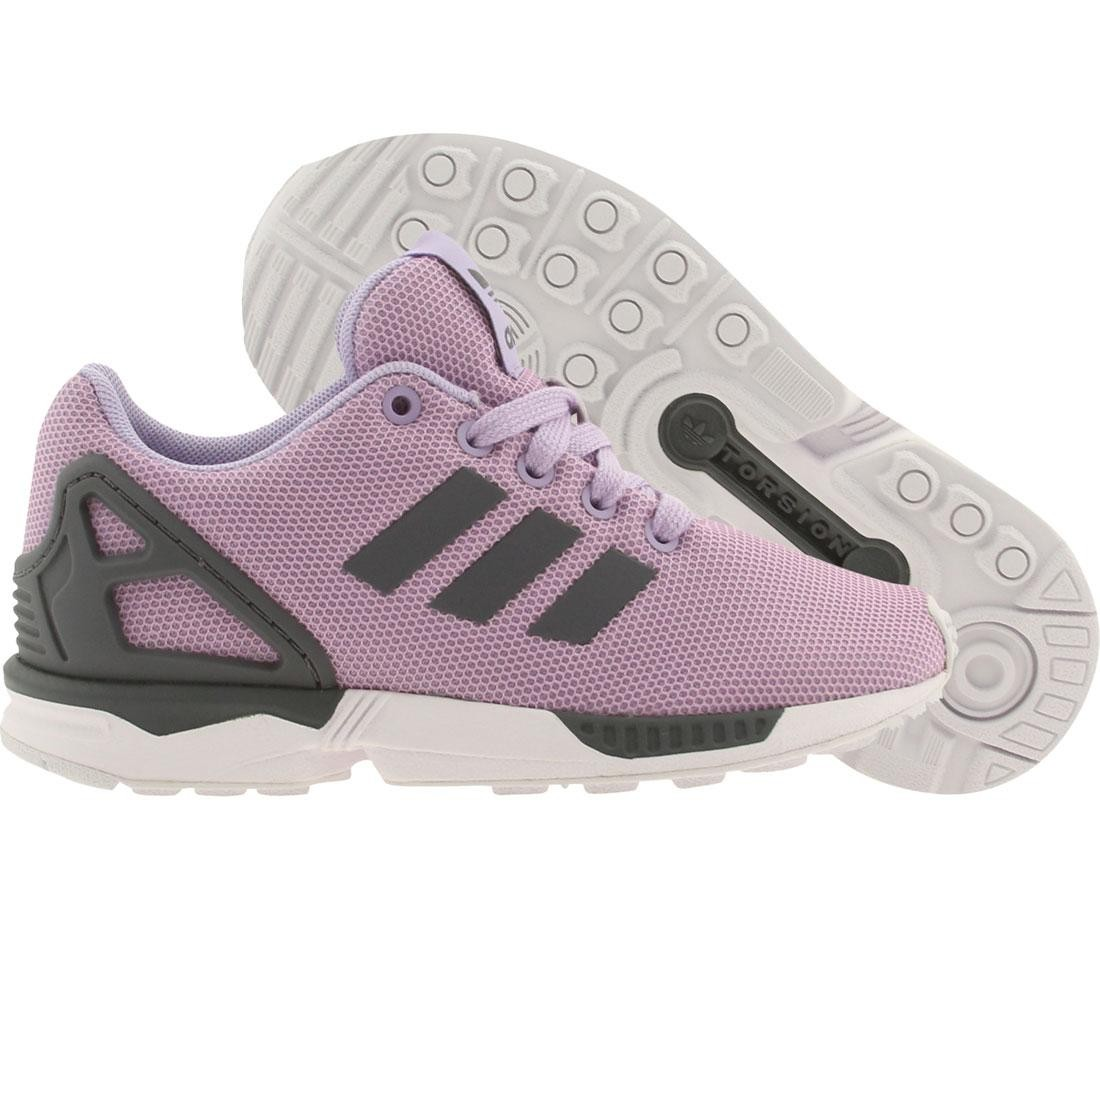 【海外限定】アディダス キッズ ベビー 【 ADIDAS LITTLE KIDS ZX FLUX K PURPLE GLOPUR ONIX FTWWHT 】